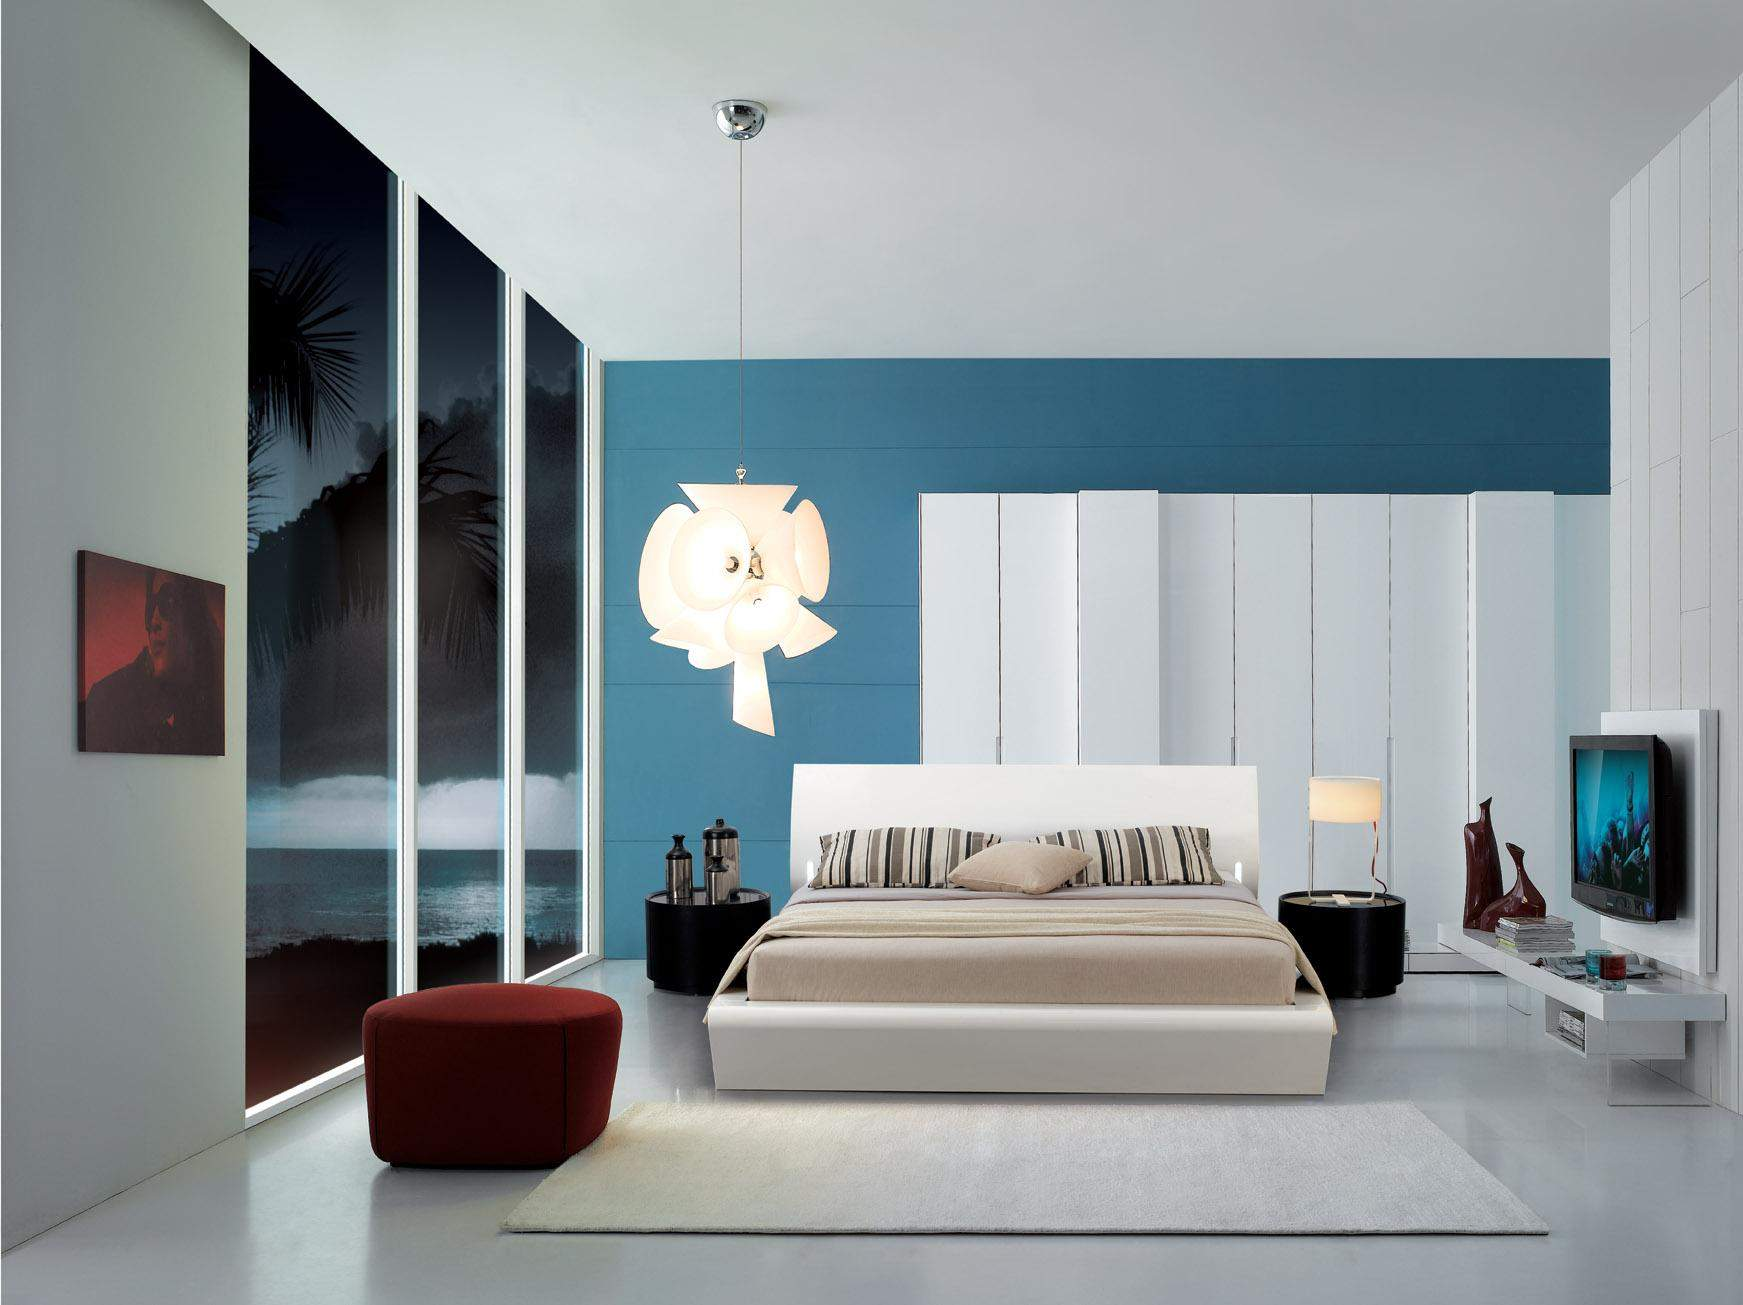 Bedroom Sets In Kerala overnice wood high end bedroom furniture sets feat lacquered bed